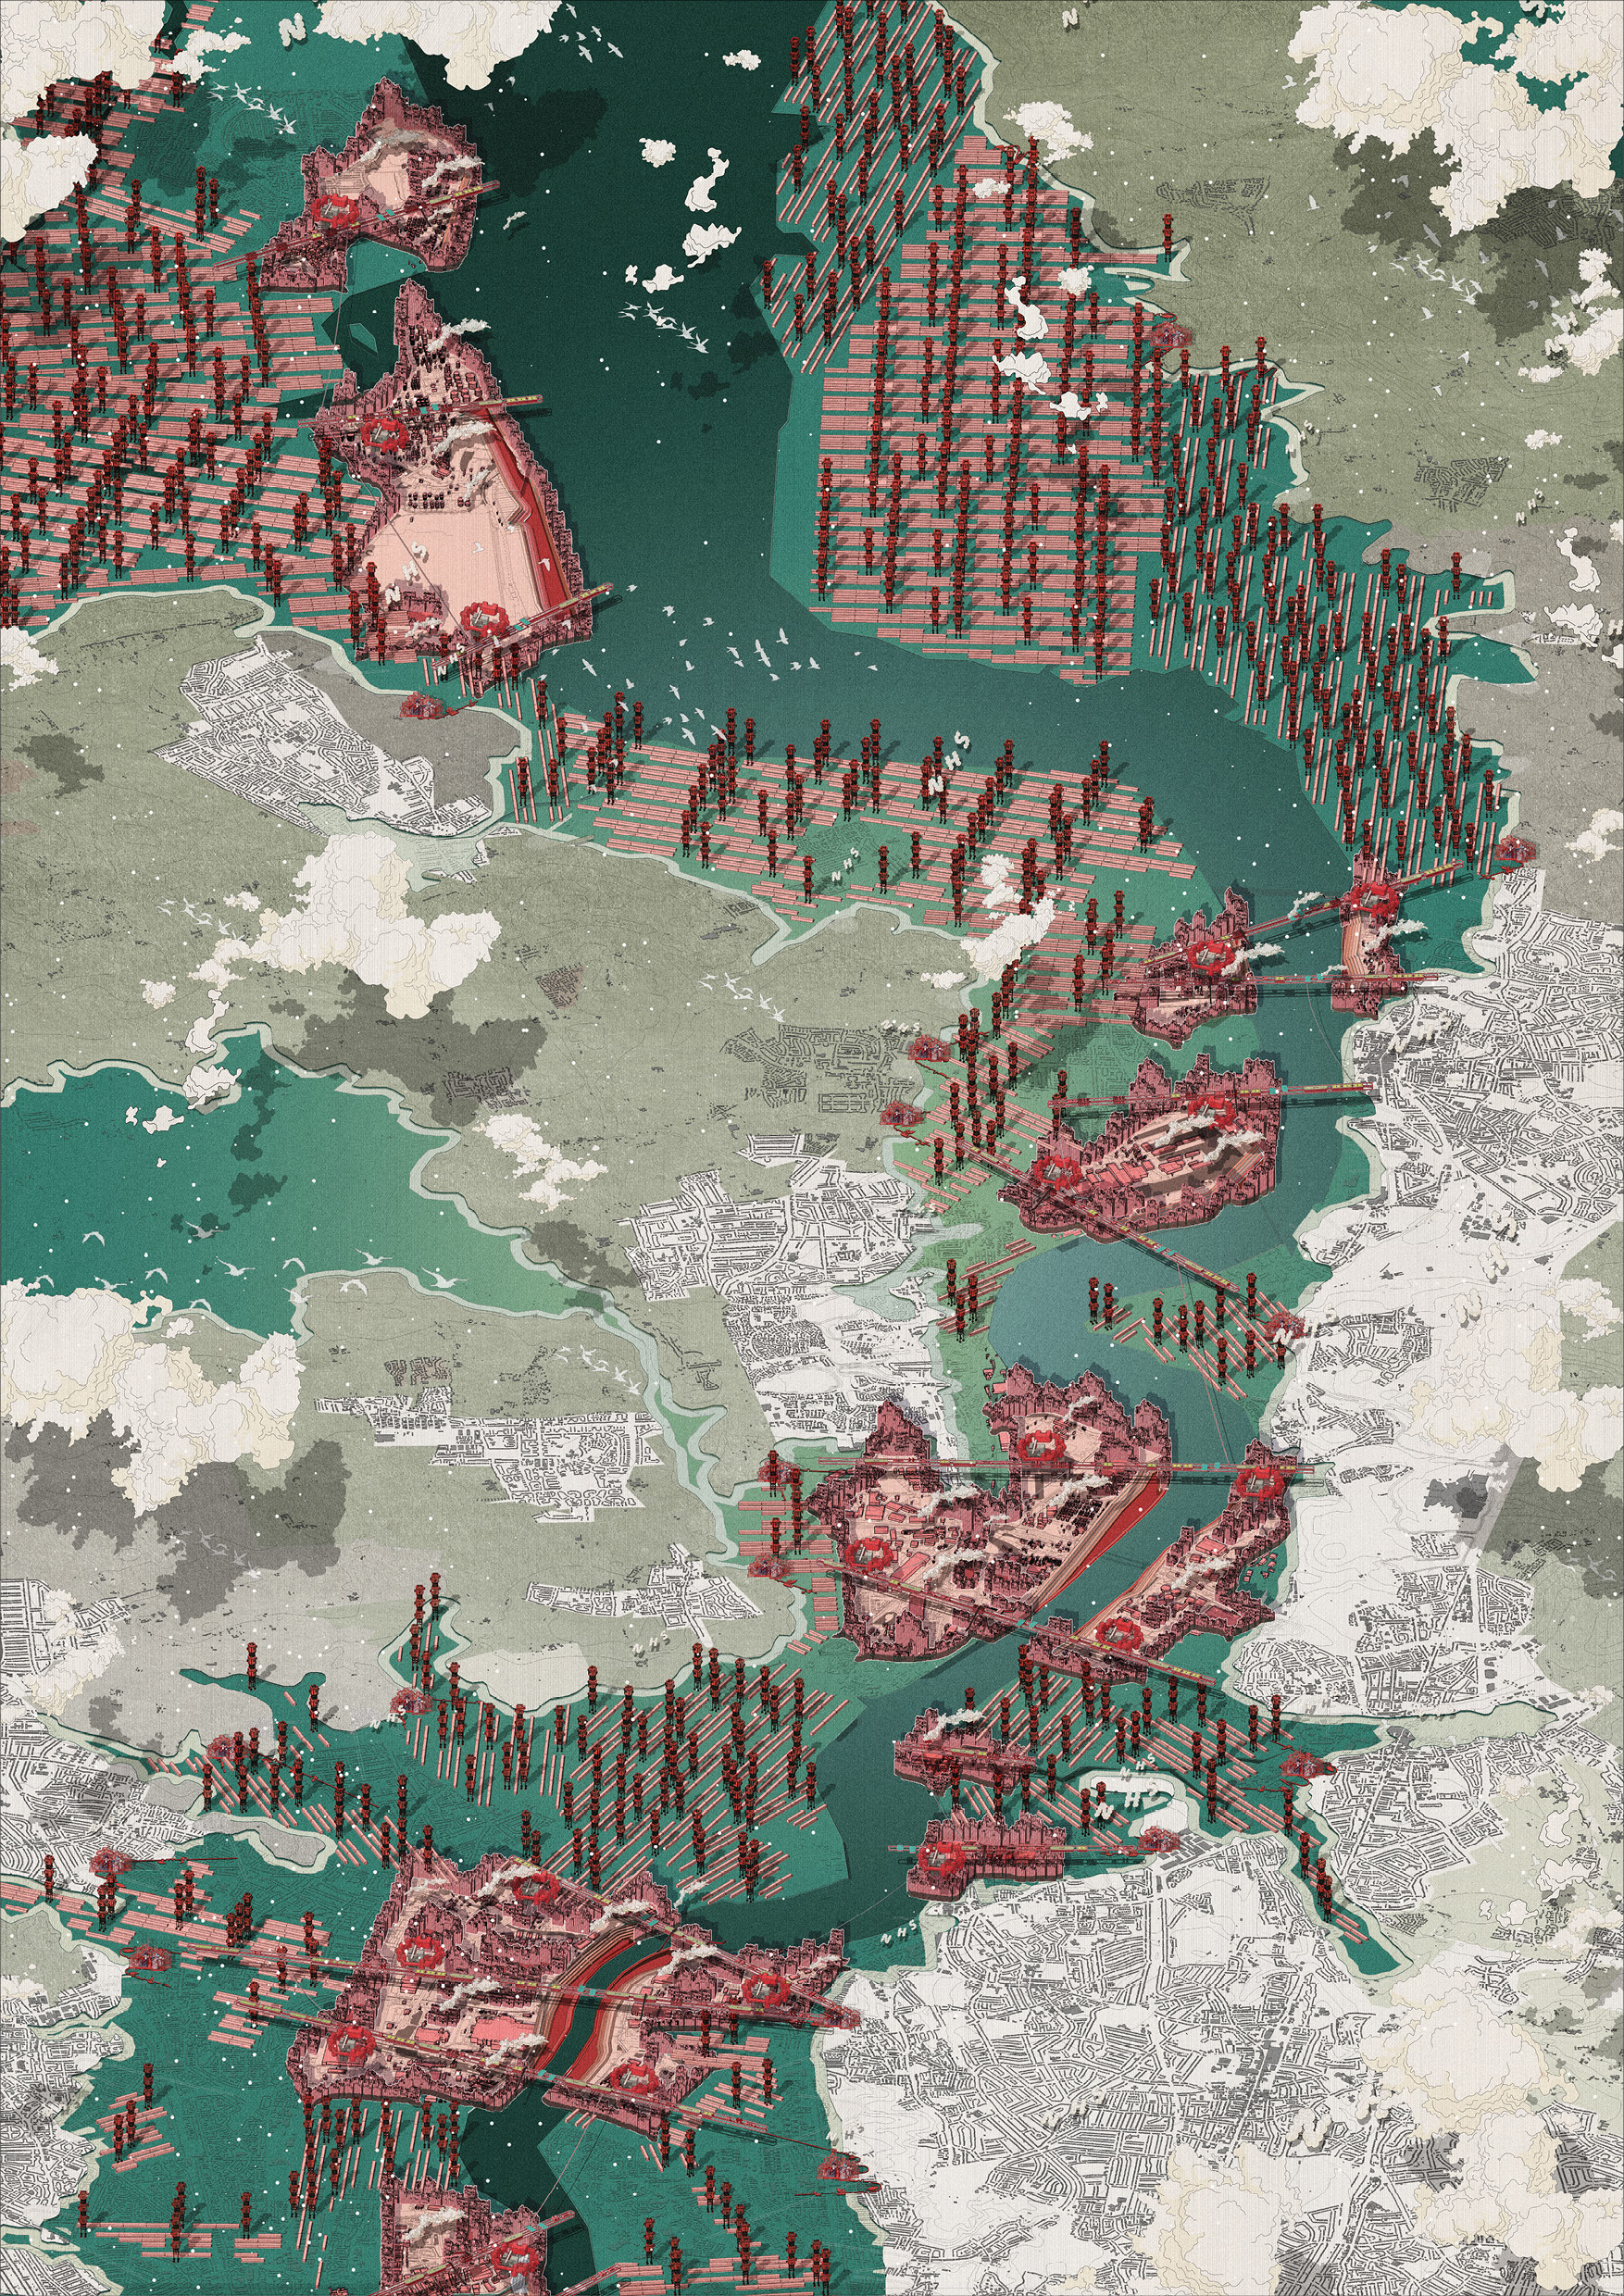 Masterplan Isometric.  View looking East along the sea level rise inundated Thames Estuary populated with Labour Citadels.